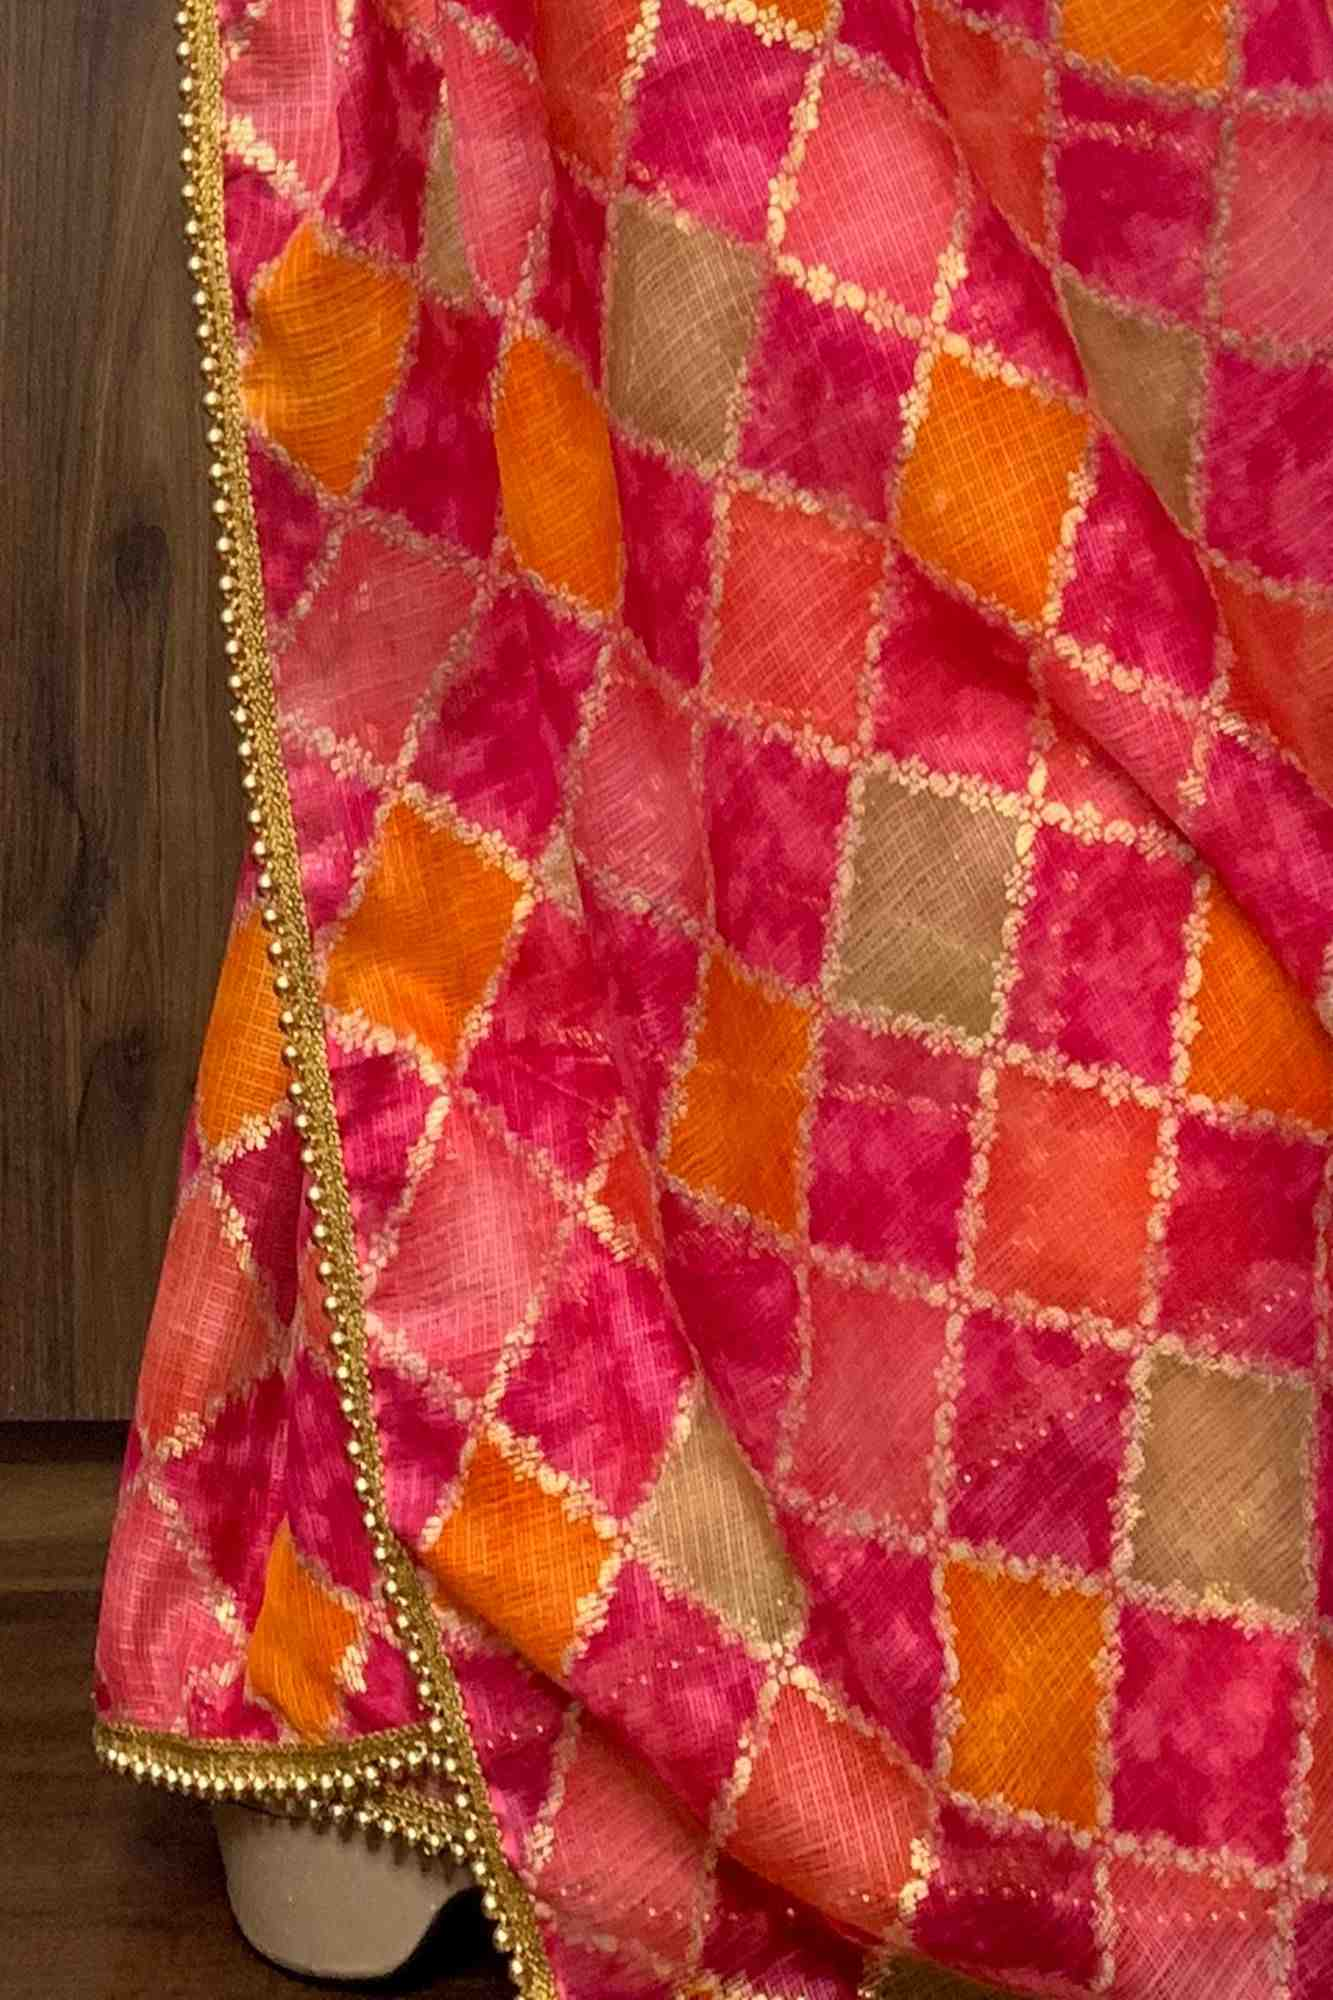 Pink Bandhej Print with golden foil print on kota doria with golden moti lace wrap in 1 minute saree